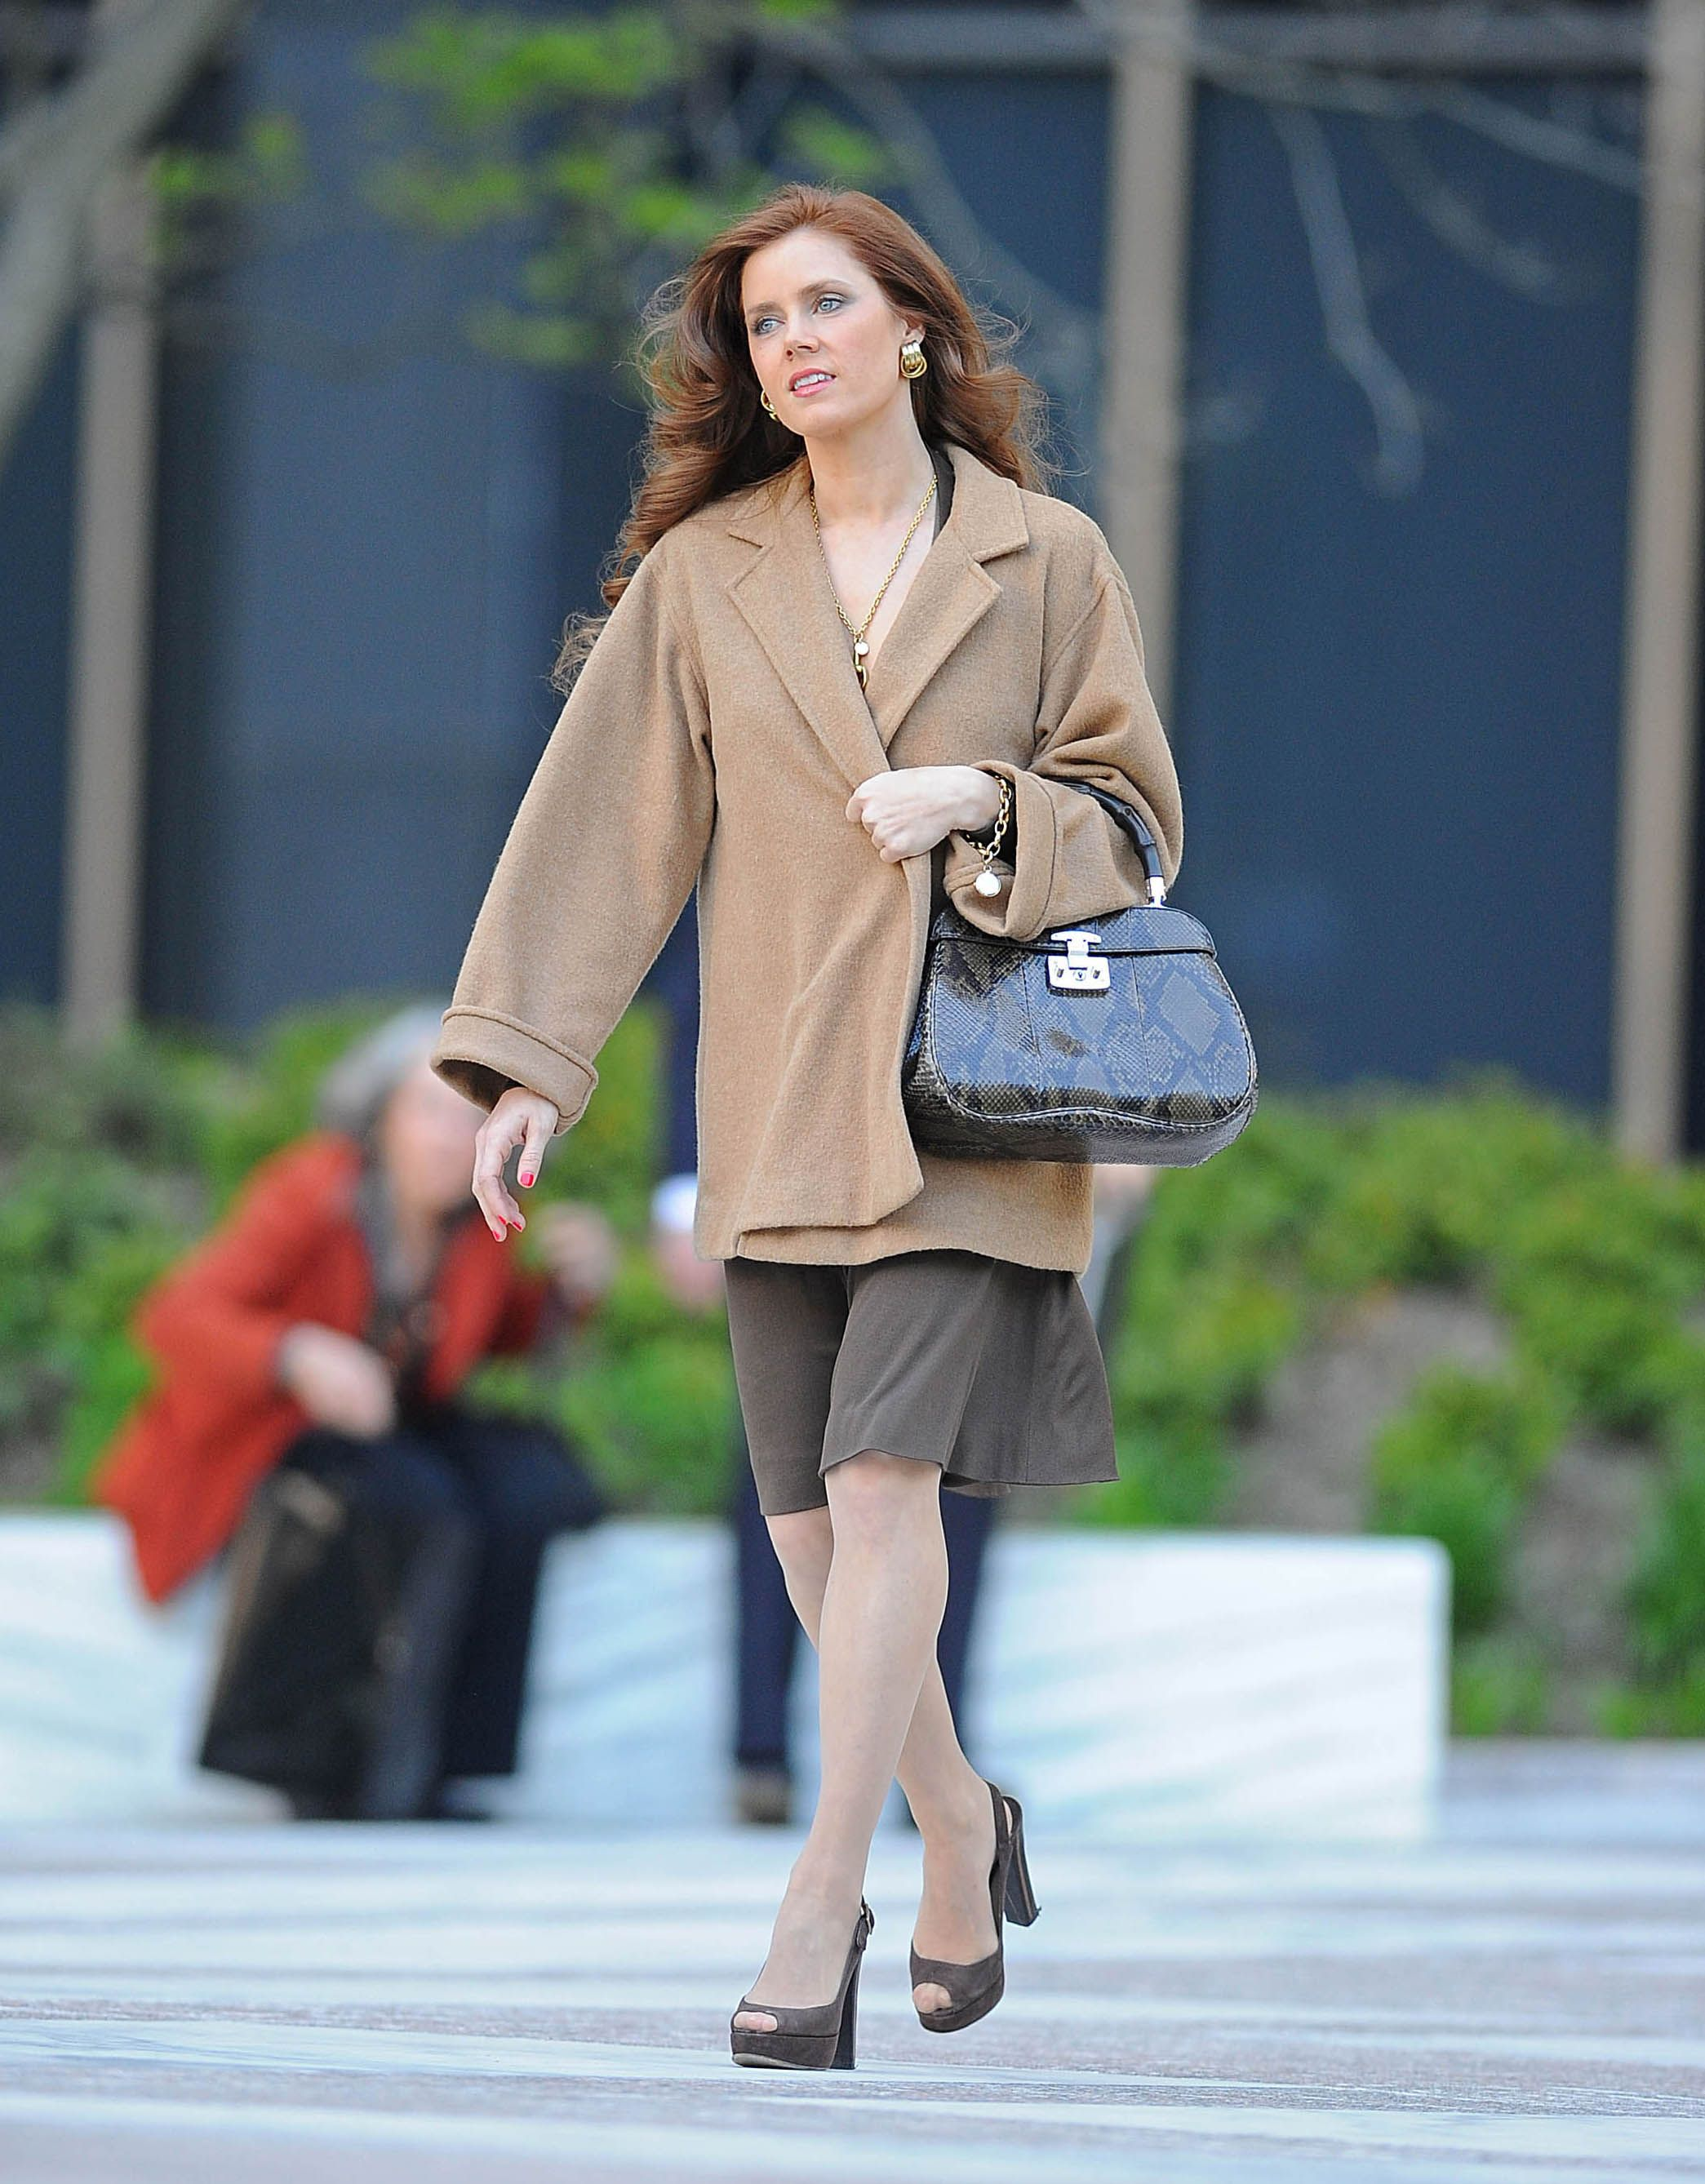 8bc8942ec061 #FreeShipping, Amy Adams carrying a Gucci python Lady Lock Handbag, 2013, #